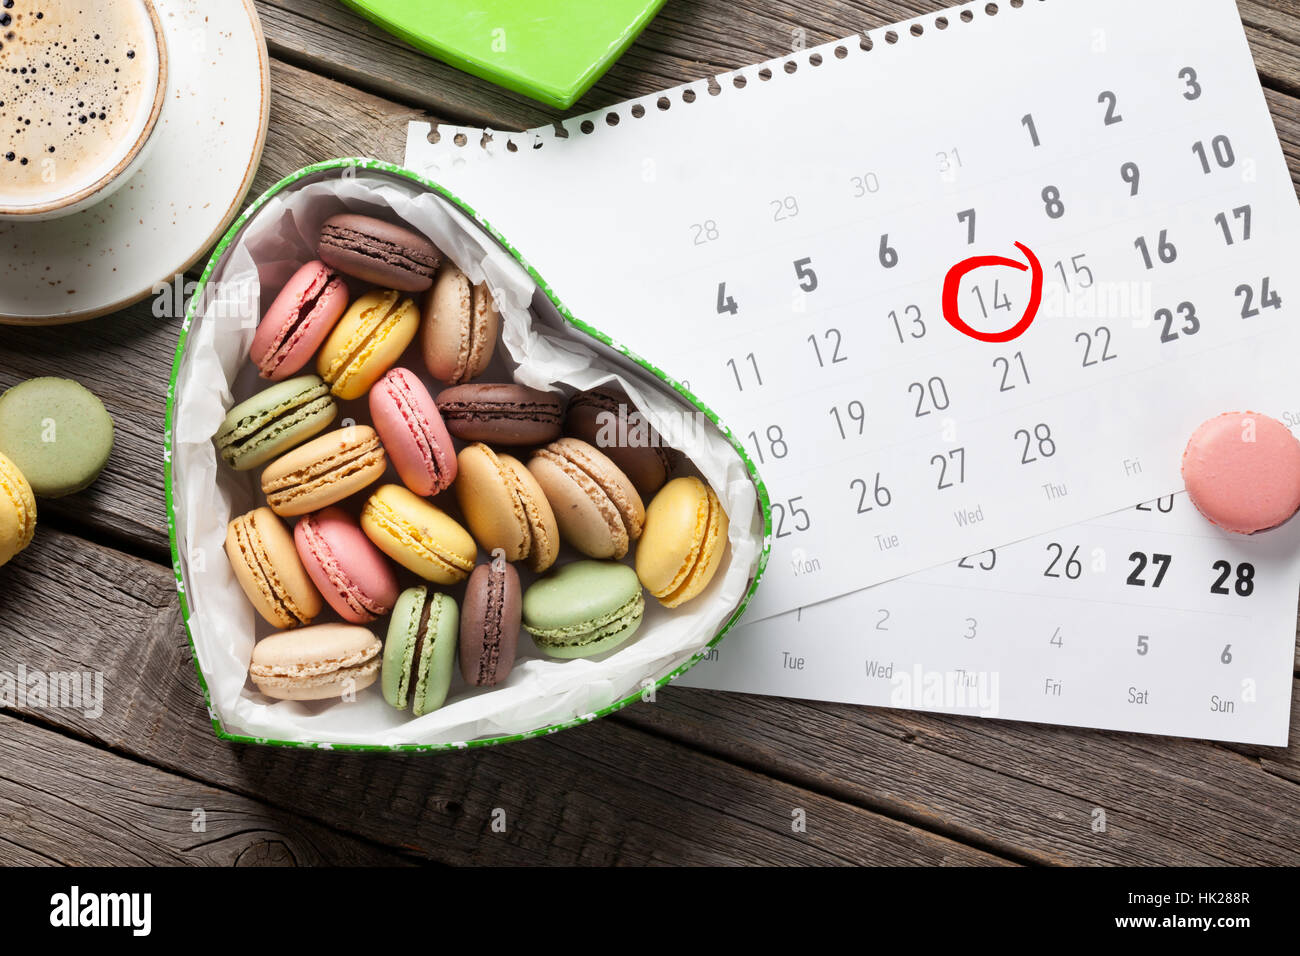 Valentines day greeting card. Macaroons in heart shaped gift box and coffee cup over february calendar. Top view - Stock Image